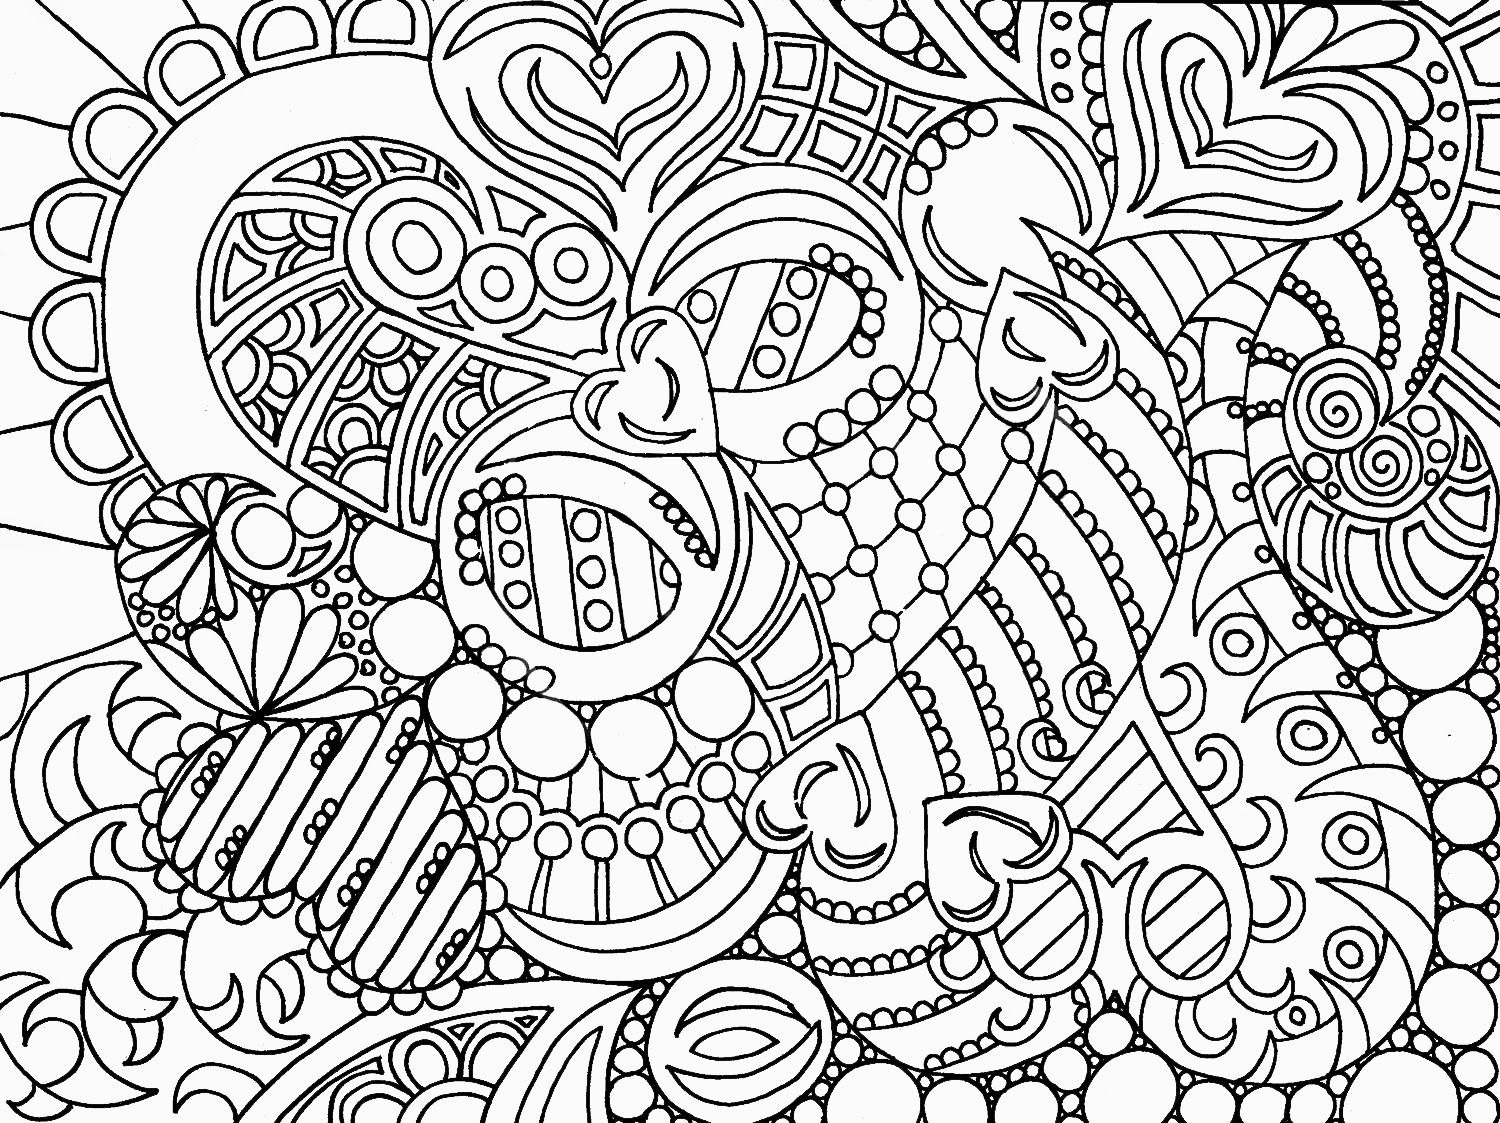 Coloring pages abstract